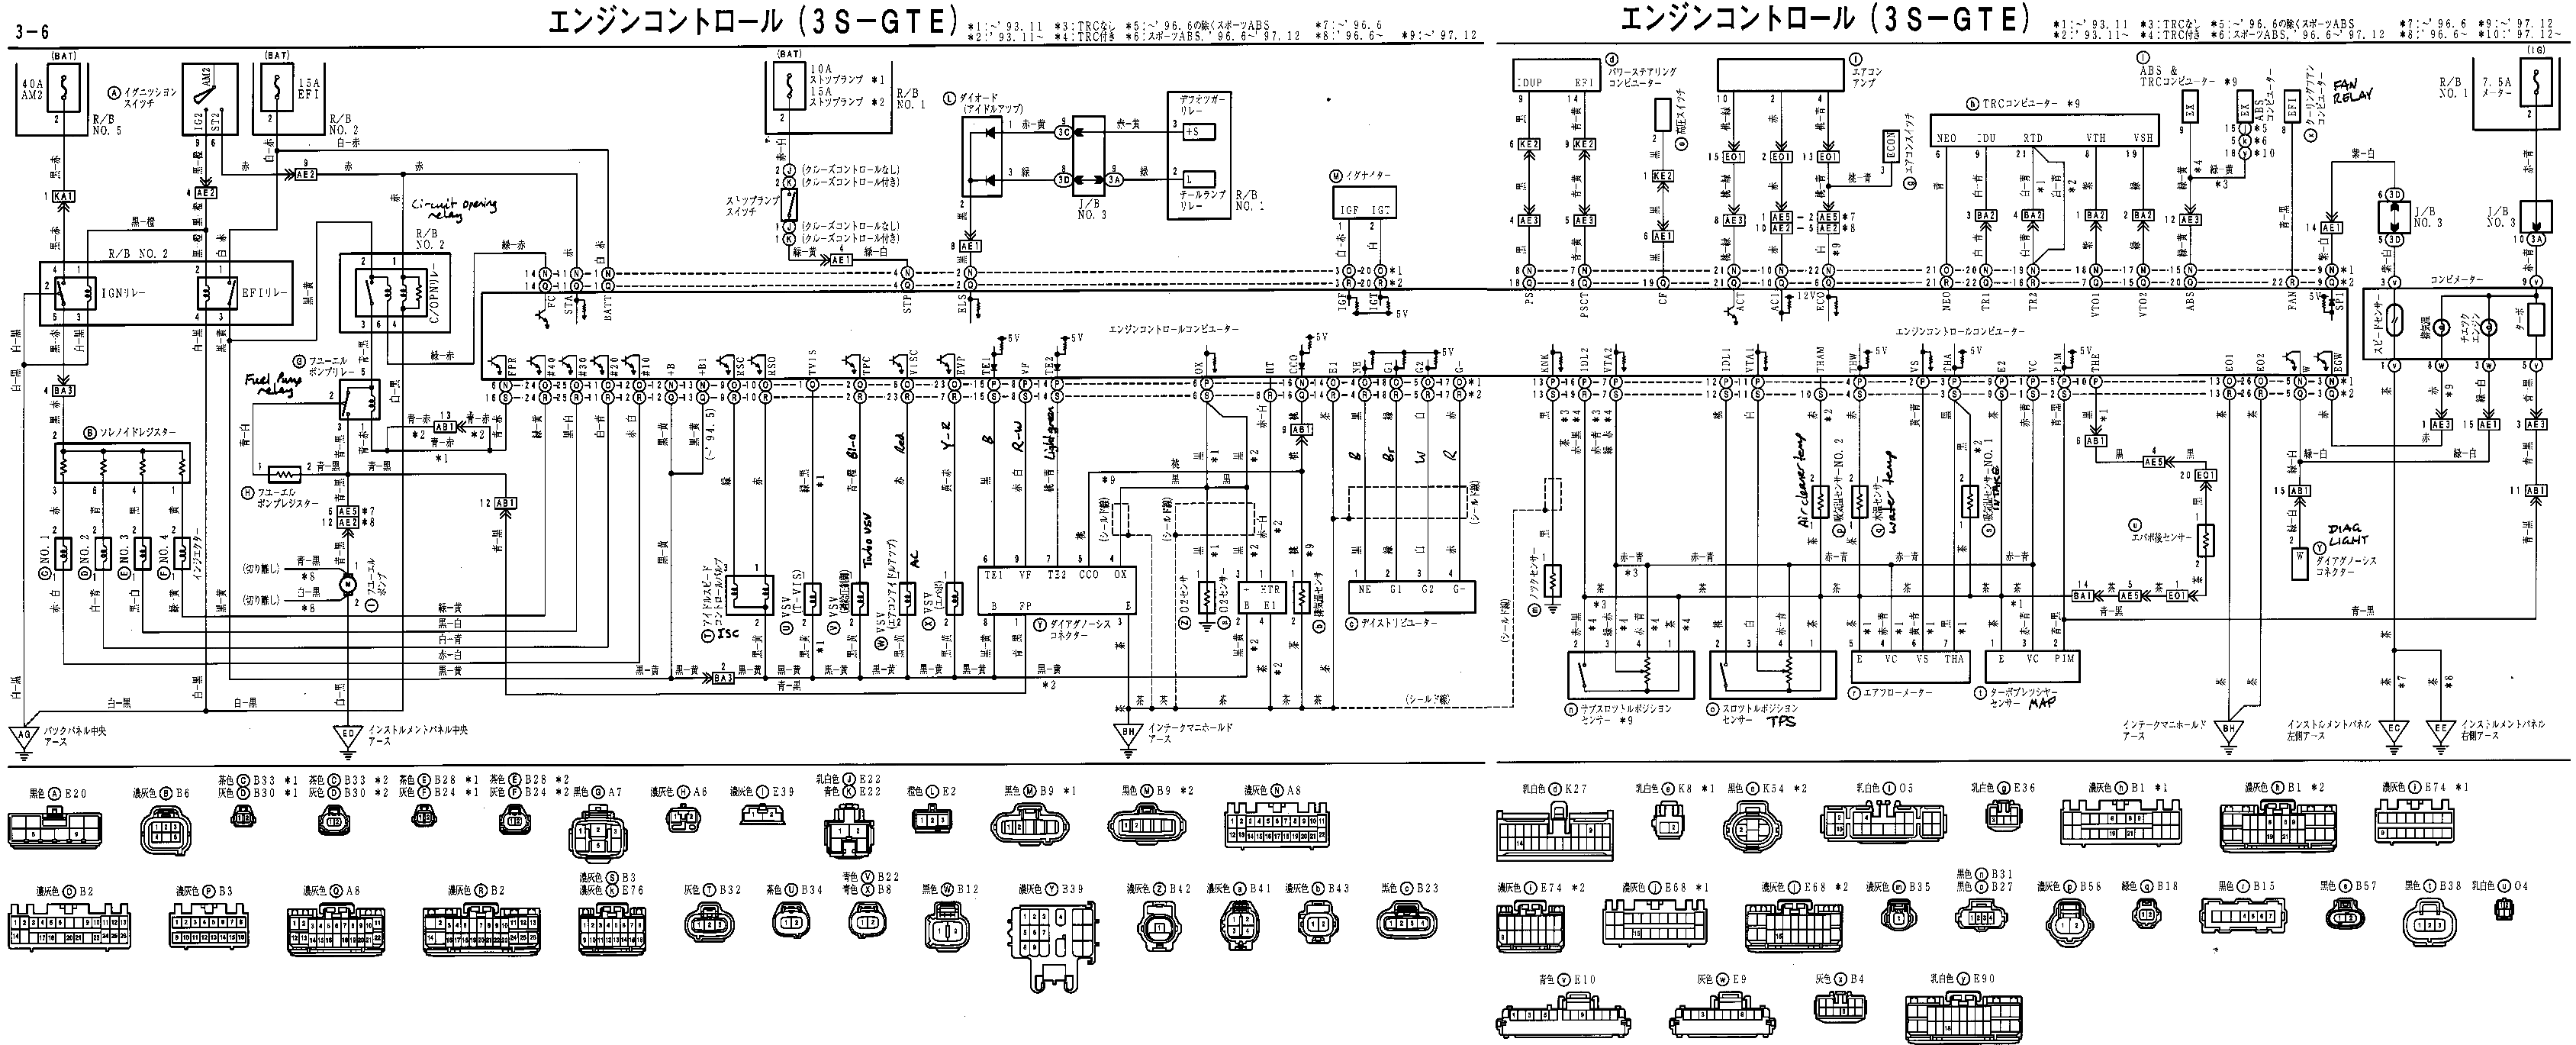 wiring diagram toyota rush pdf wire center u2022 rh girislink co Toyota Wiring Diagrams Color Code 2002 Toyota Tacoma Wiring Diagram